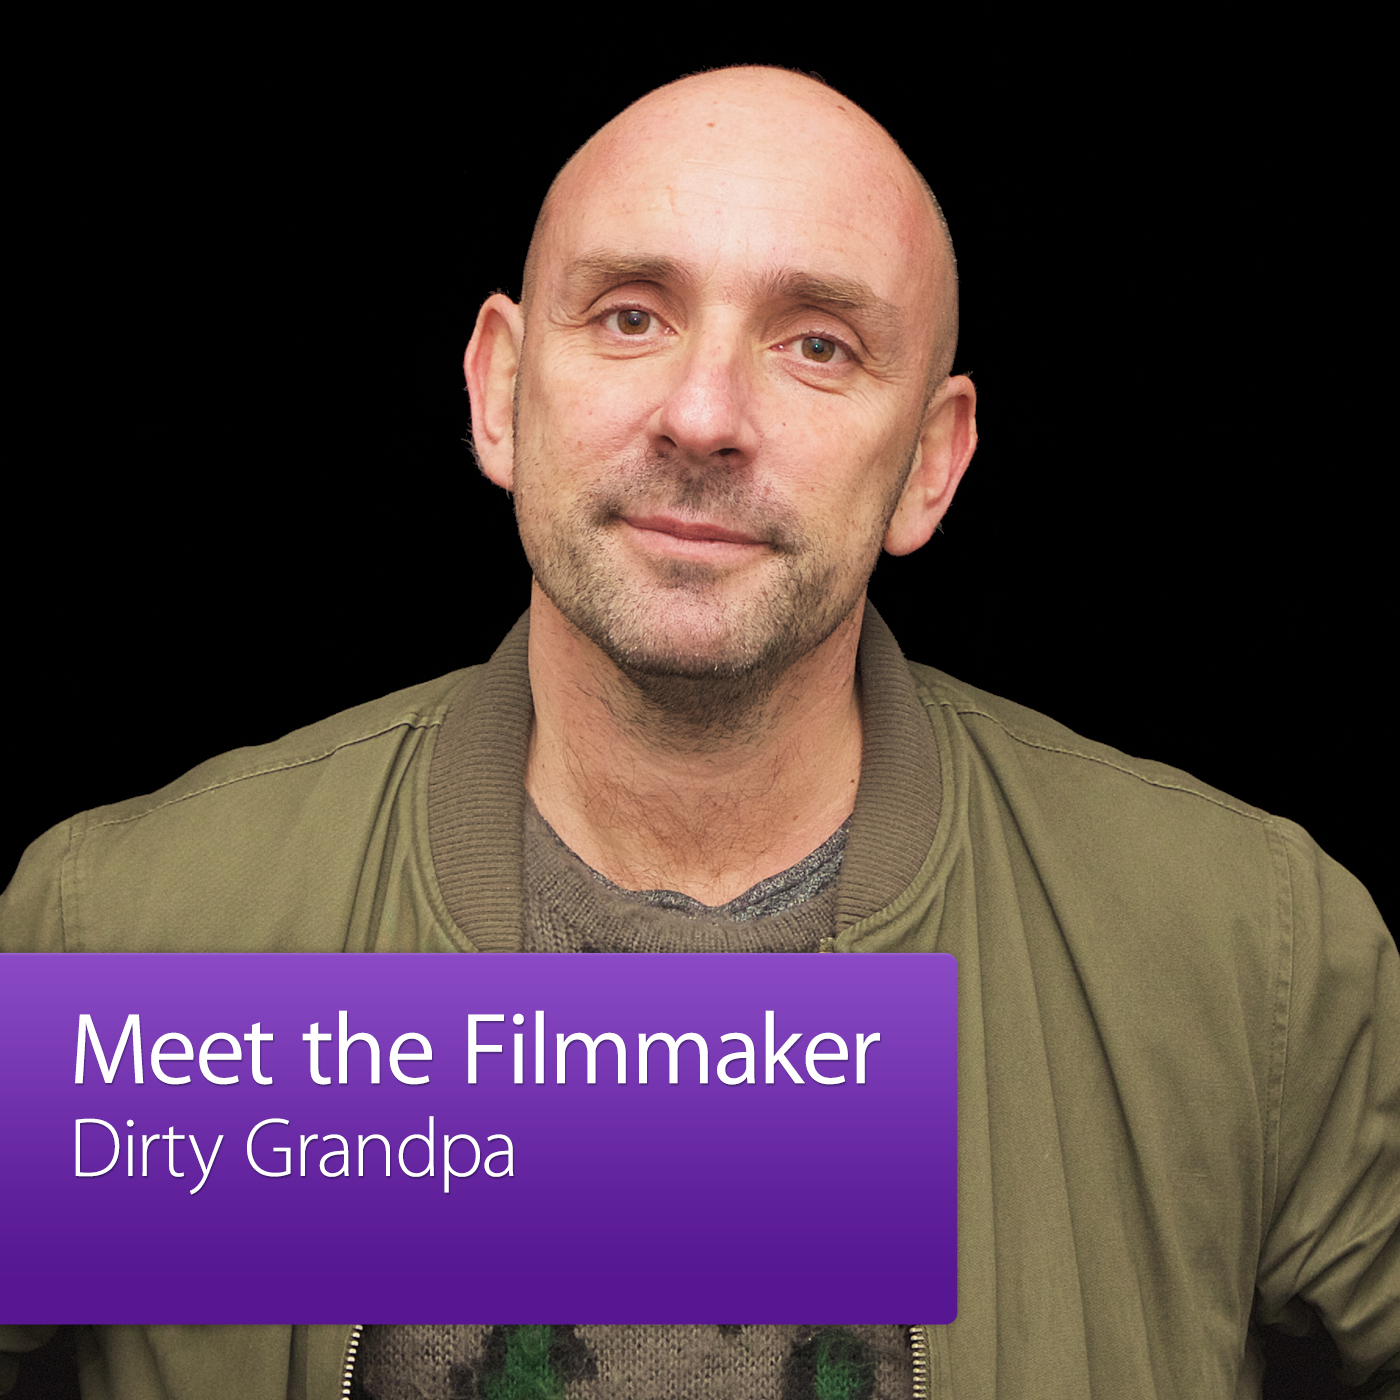 Dirty Grandpa: Meet the Filmmaker